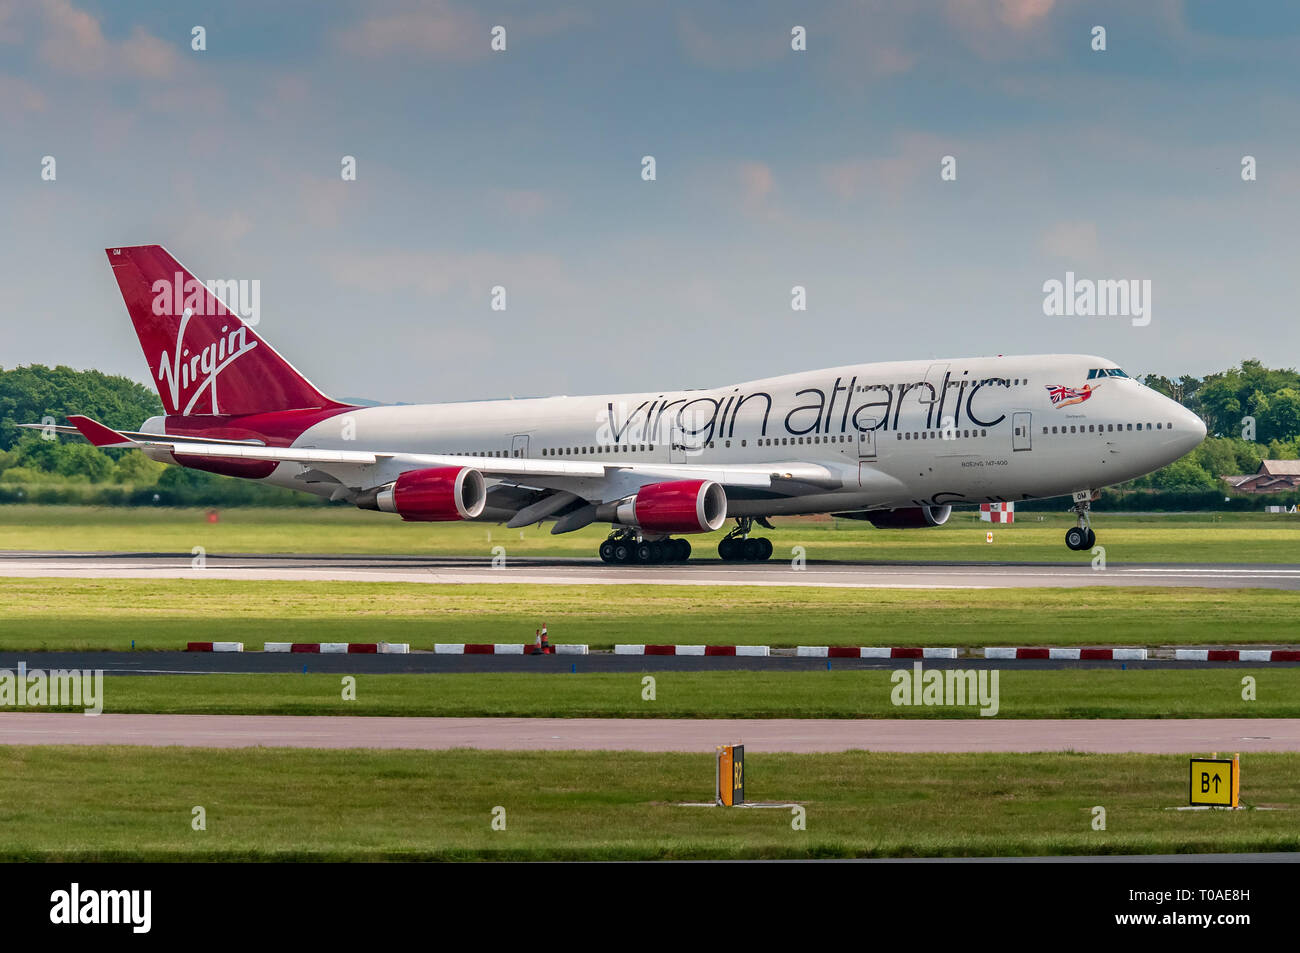 Virgin Atlantic Boeing 747 Barbarella at Manchester airport. - Stock Image